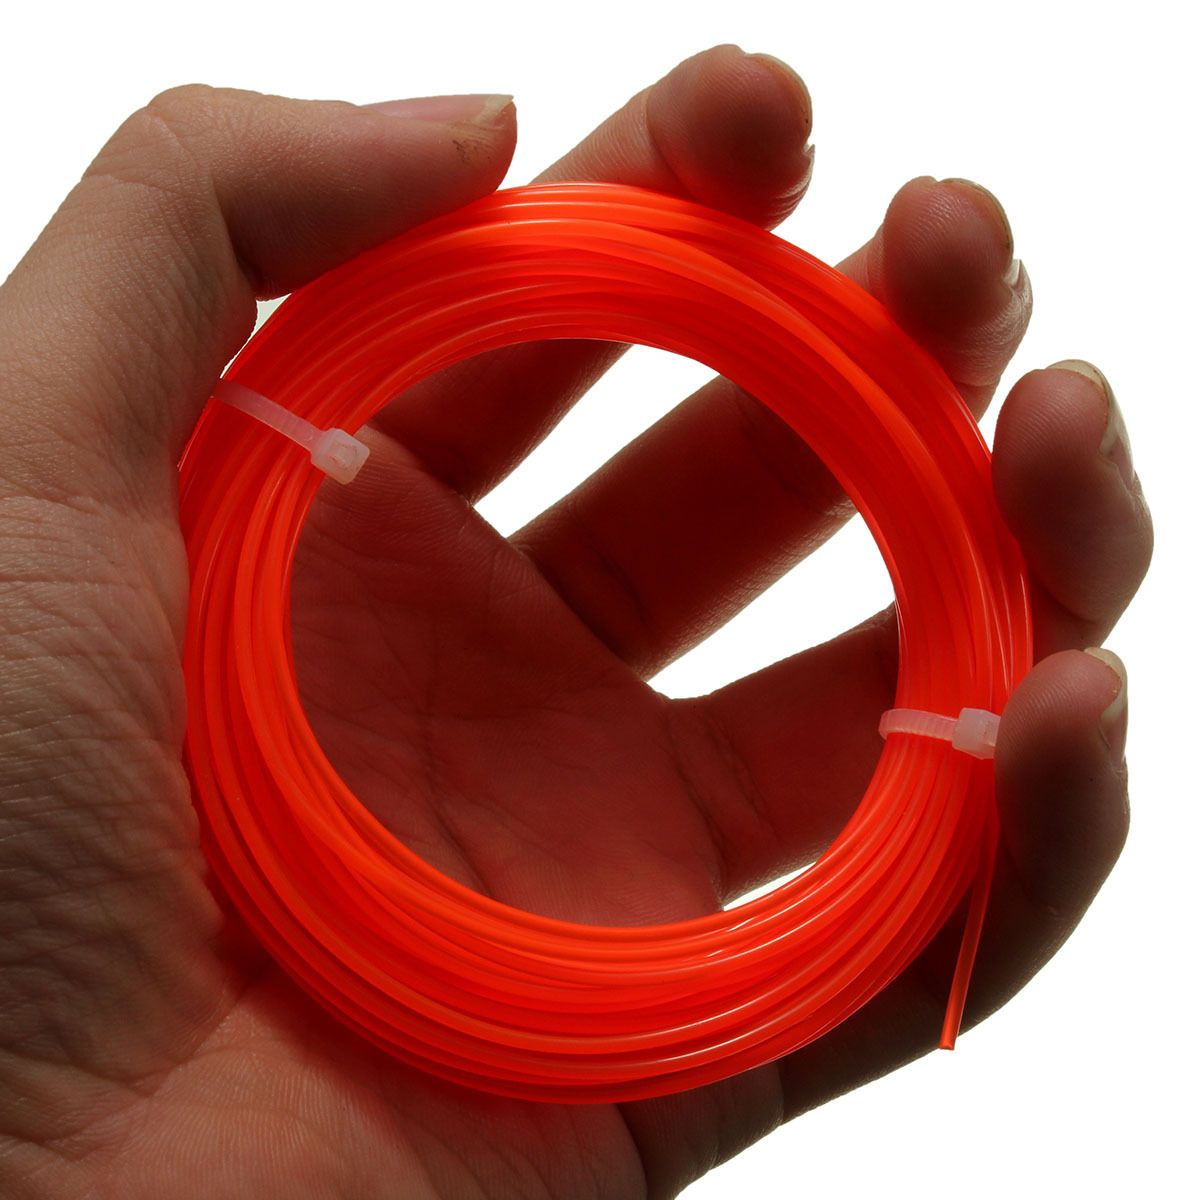 New Nylon Trimmer Line Rope Roll For Most Petrol Strimmers Machine Lawn Mover Parts 15m x 1.25mm Mayitr